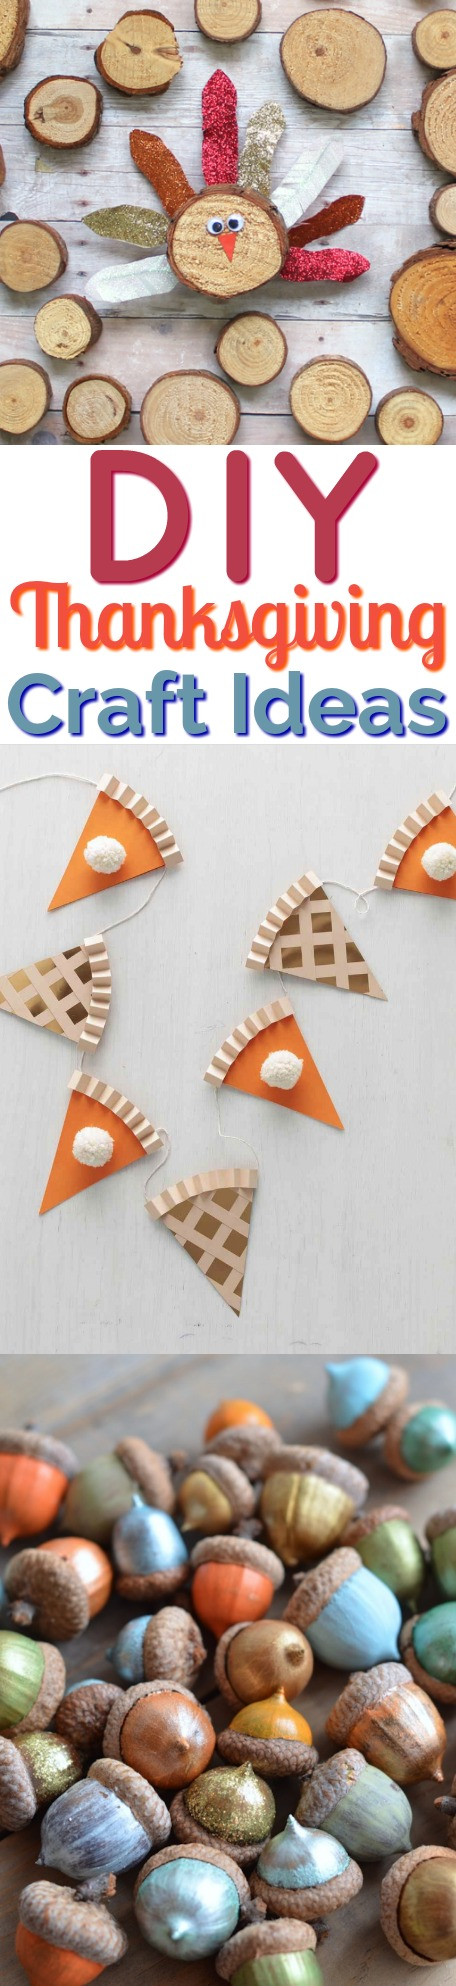 Pity, thanksgiving projects for teens pity